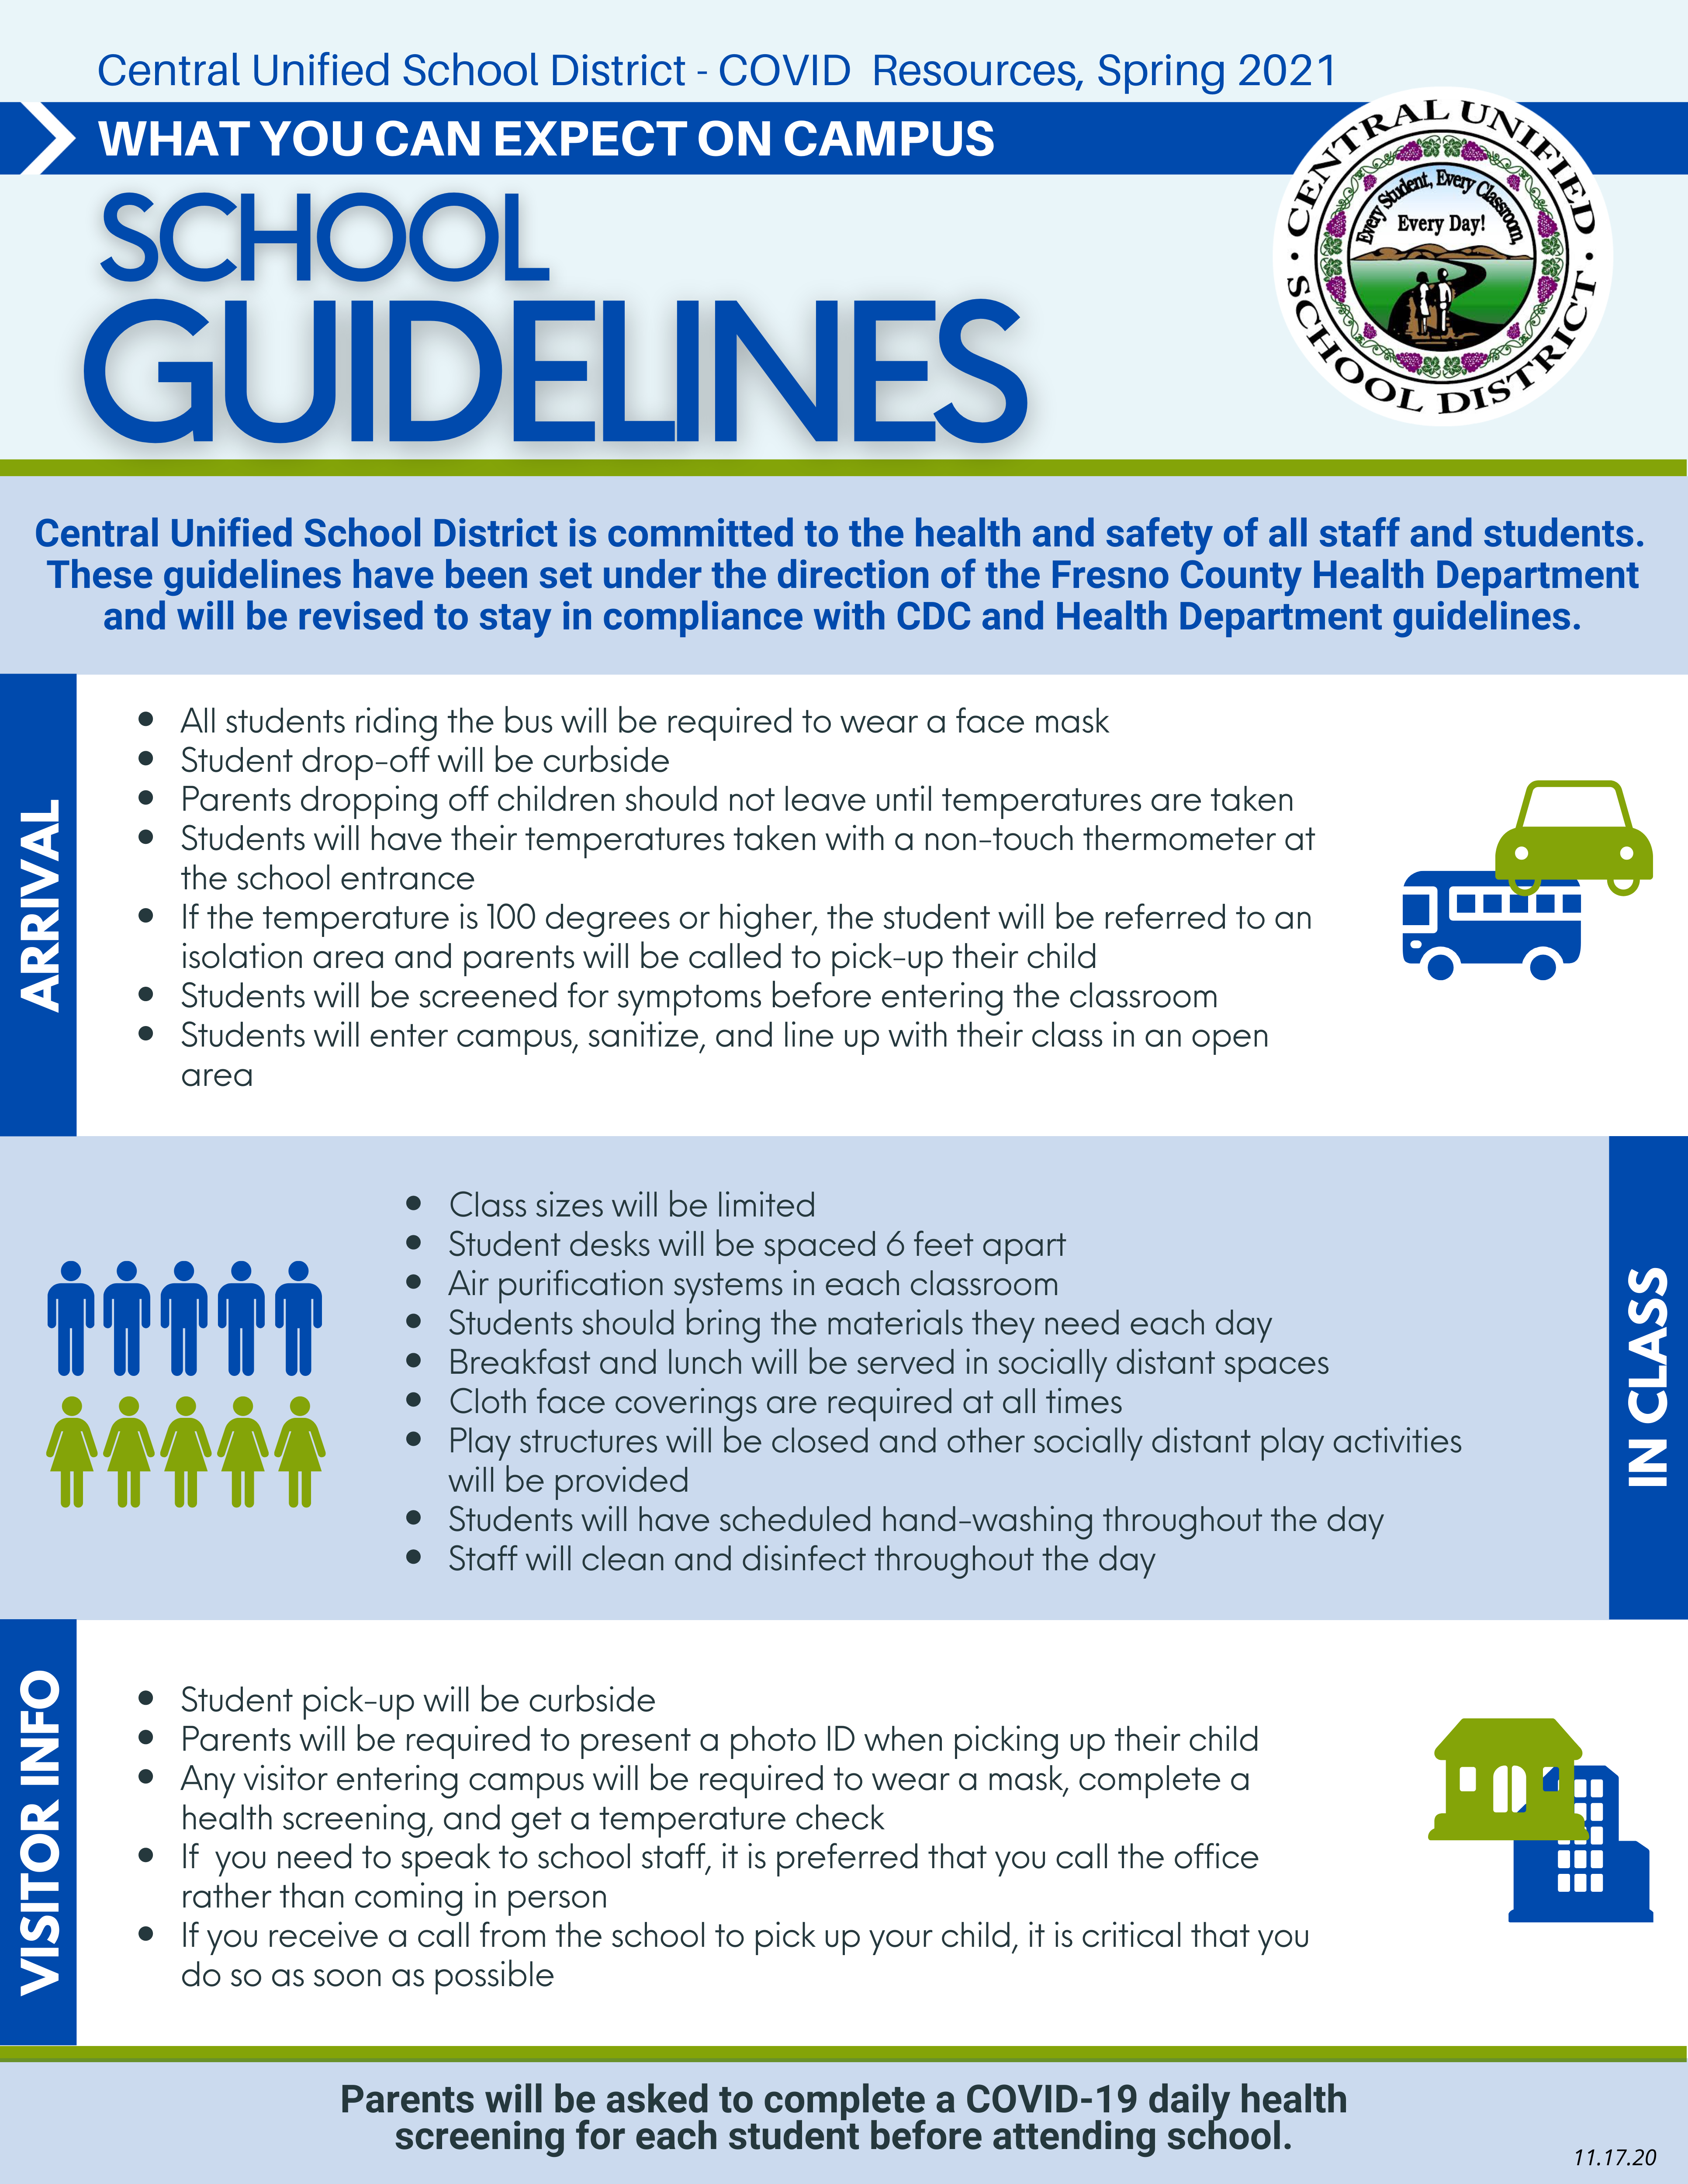 School Guidelines